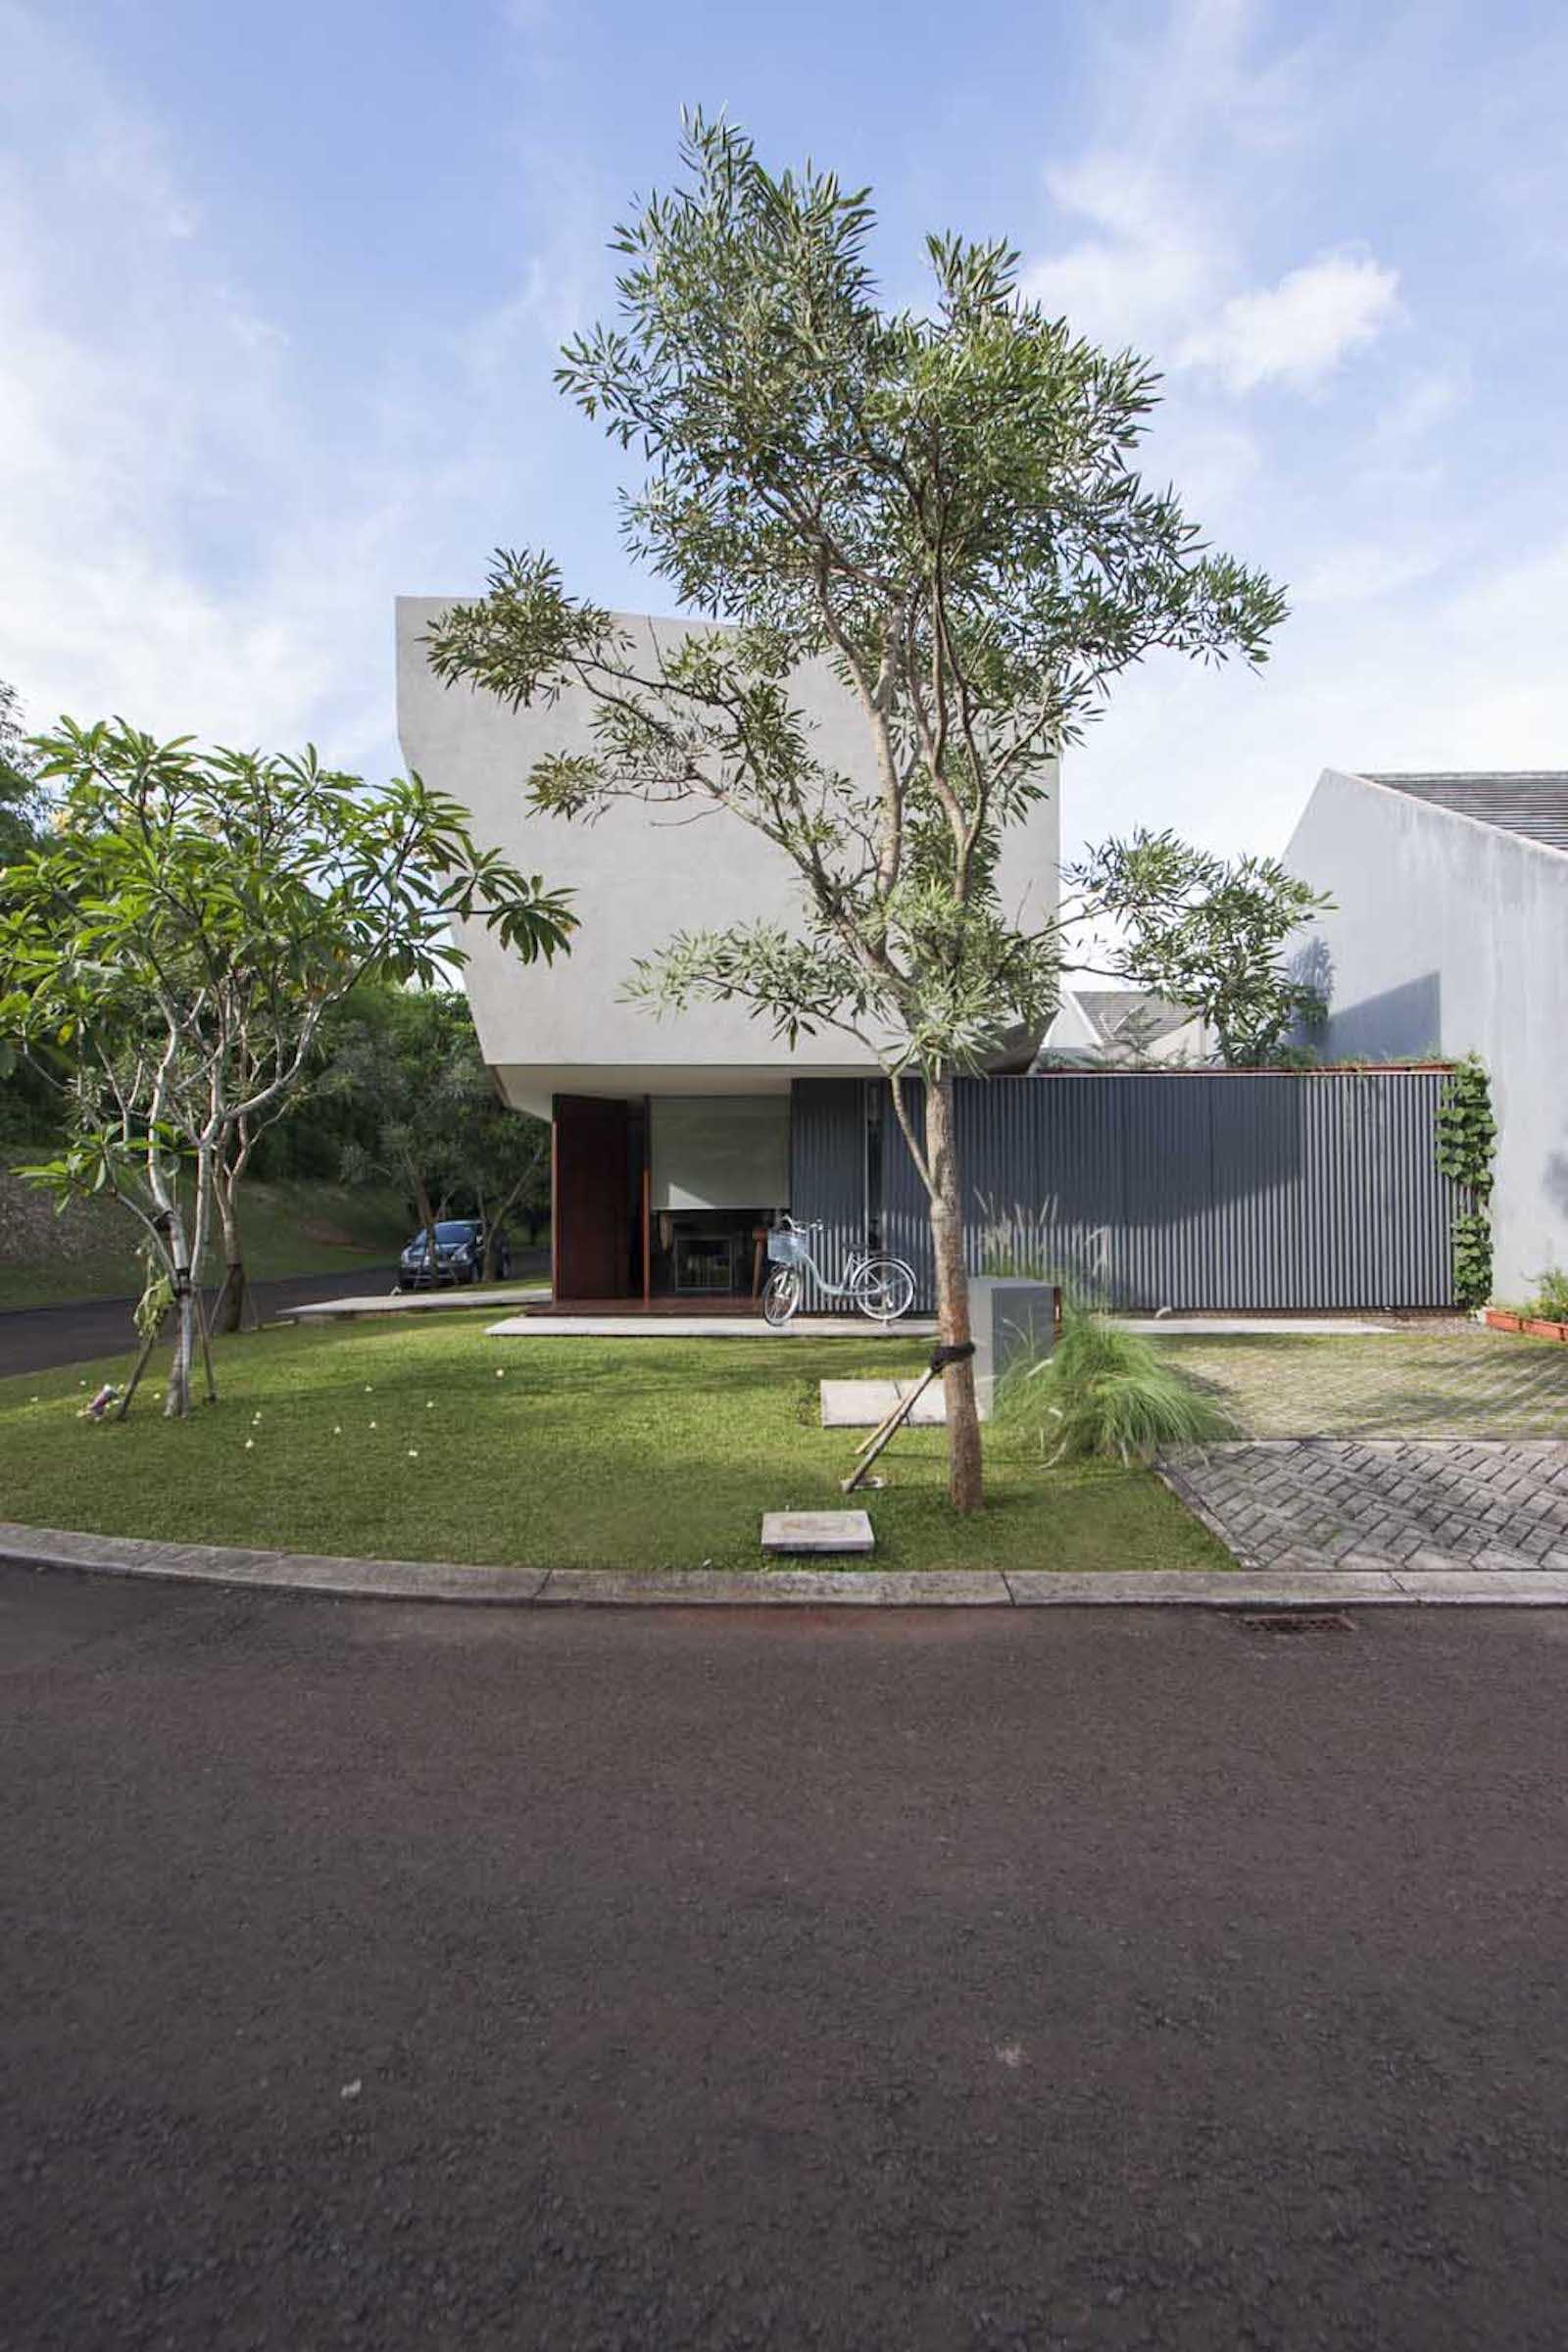 Armschitecture House Of Trimmed Reform Tangerang, Kota Tangerang, Banten, Indonesia Tangerang, Kota Tangerang, Banten, Indonesia Arms-Studio-House-Of-Trimmed-Reform Contemporary  65848